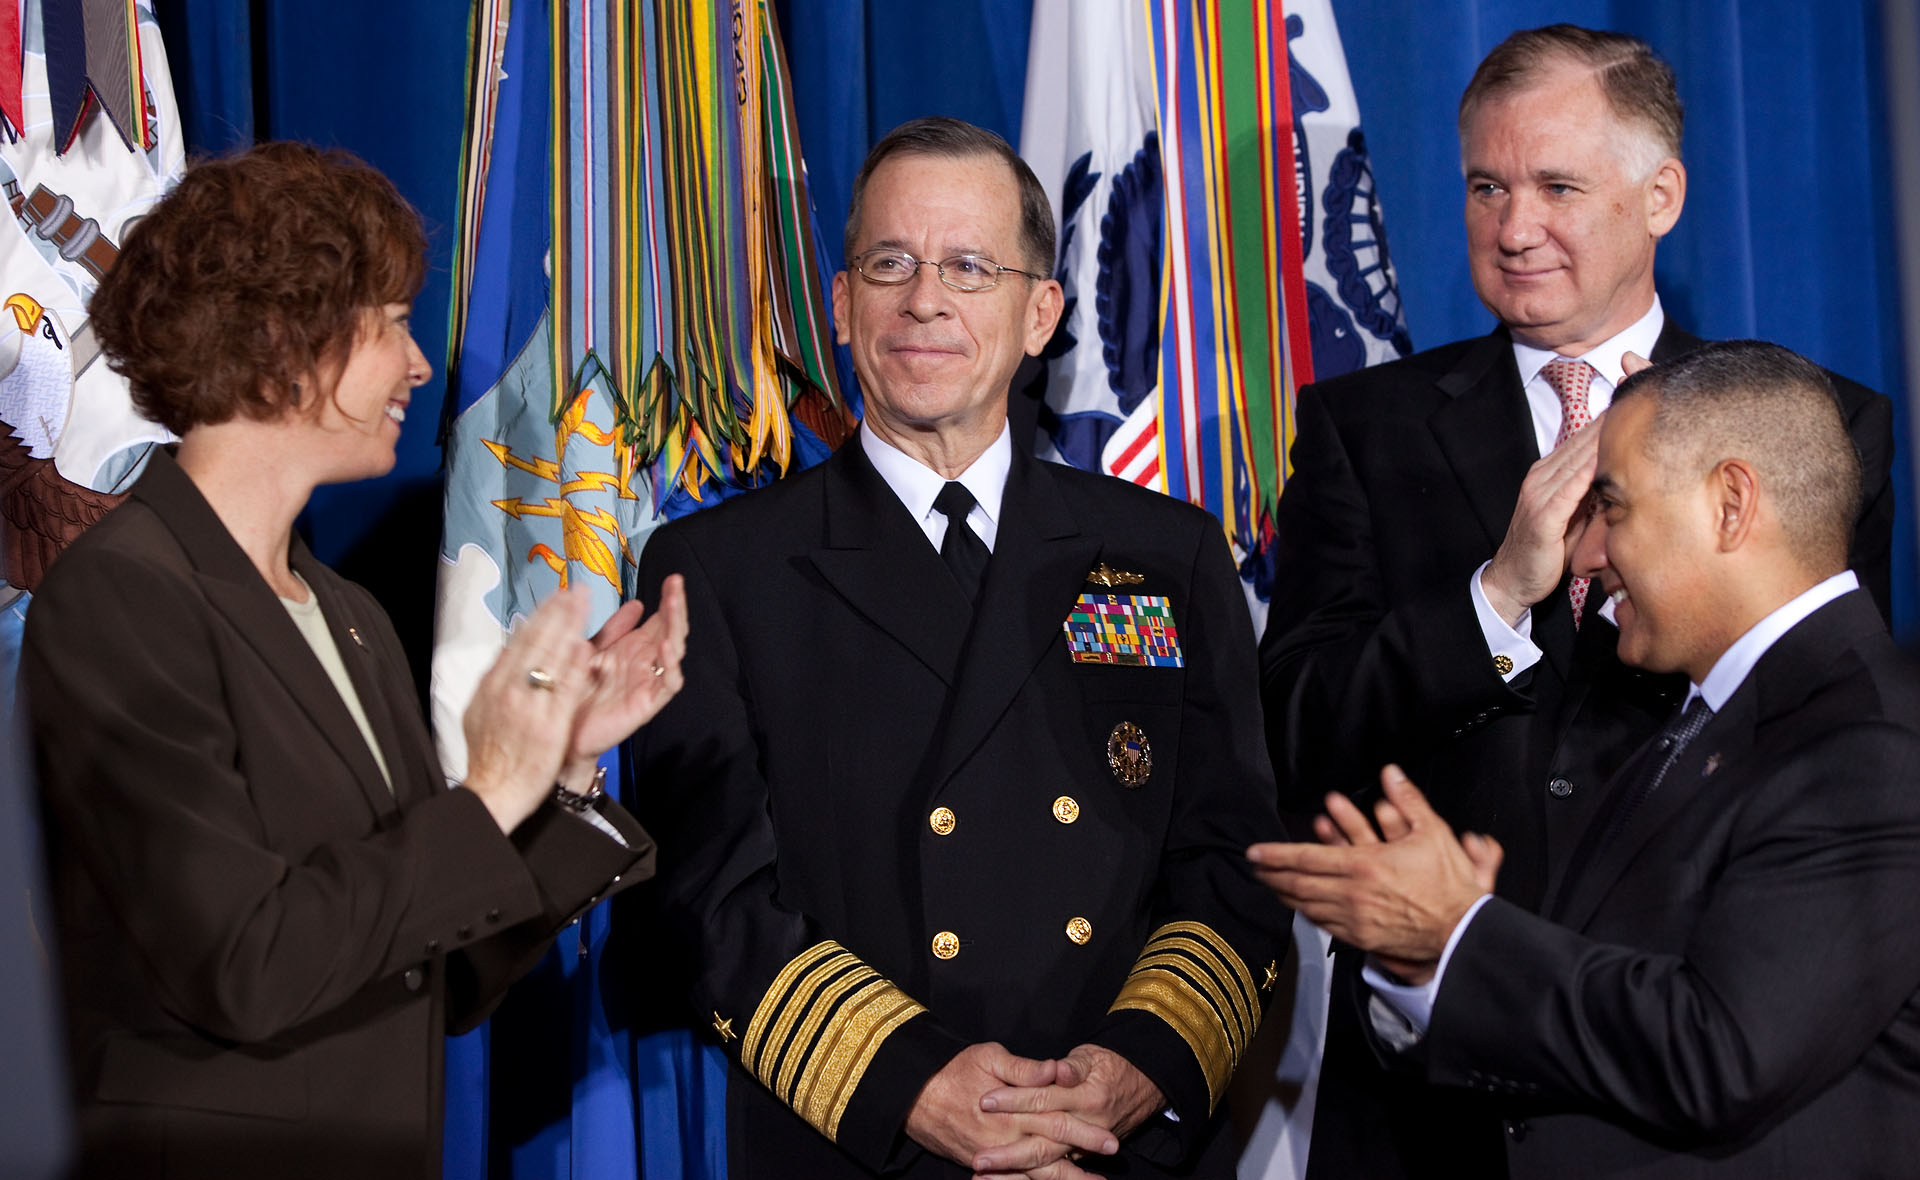 Chairman of the Joint Chiefs of Staff Admiral Mike Mullen at Signing of